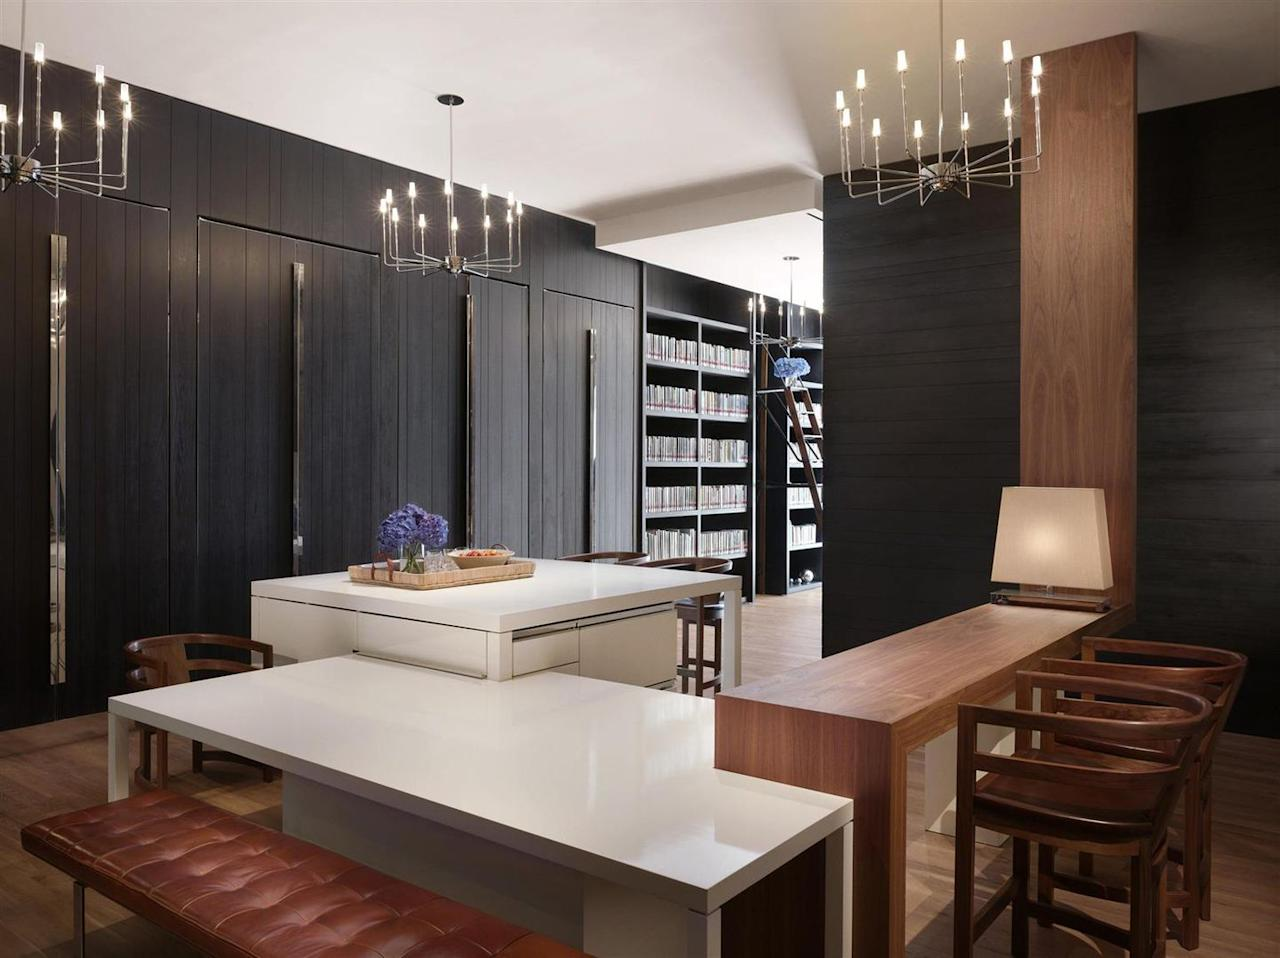 """<p>This classic, Hyatt-brand hotel offers stylish lofted rooms and cozy wrap-around decks with outstanding views of Bryant Park and Grand Central, all within walking distance of some of the city's most popular attractions, like the lion-bedecked public library.<br><a rel=""""nofollow"""" href=""""https://newyork5thavenue.andaz.hyatt.com/en/hotel/home.html"""">Book Now</a></p>"""